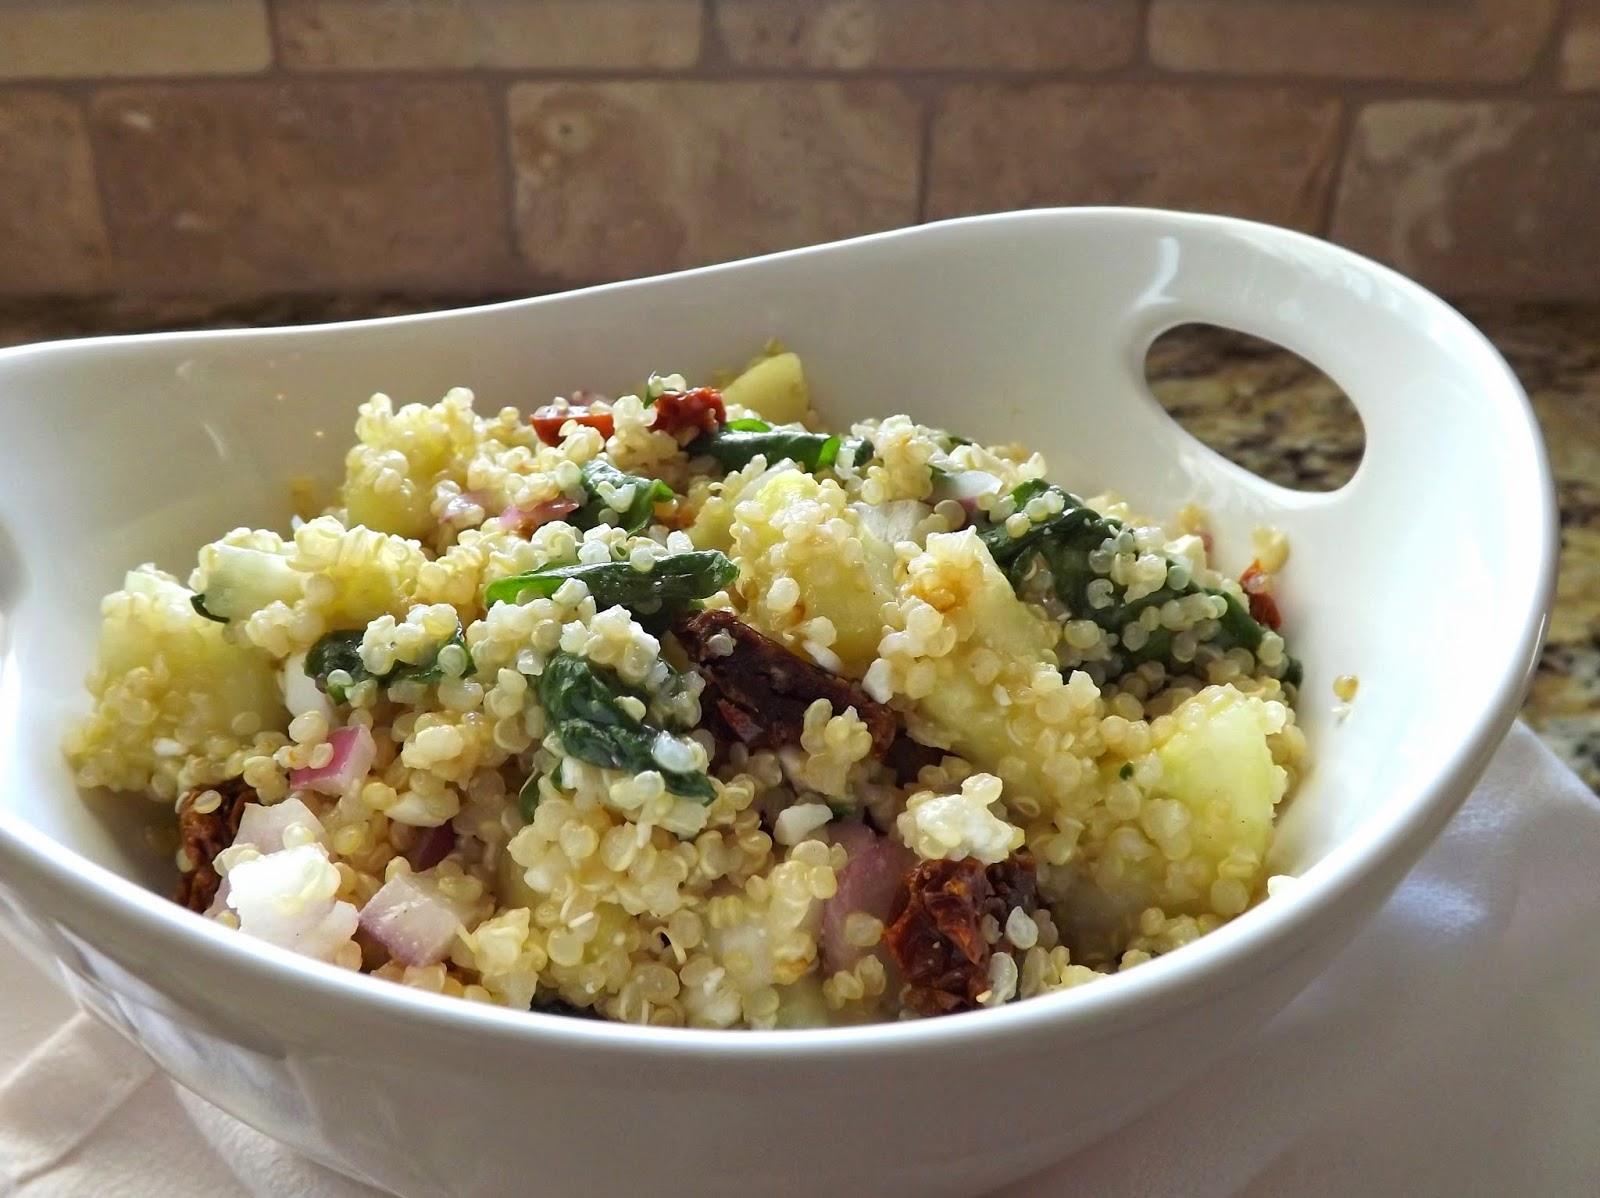 The Bake-Off Flunkie: Spinach, Feta & Sundried Tomato Quinoa Salad